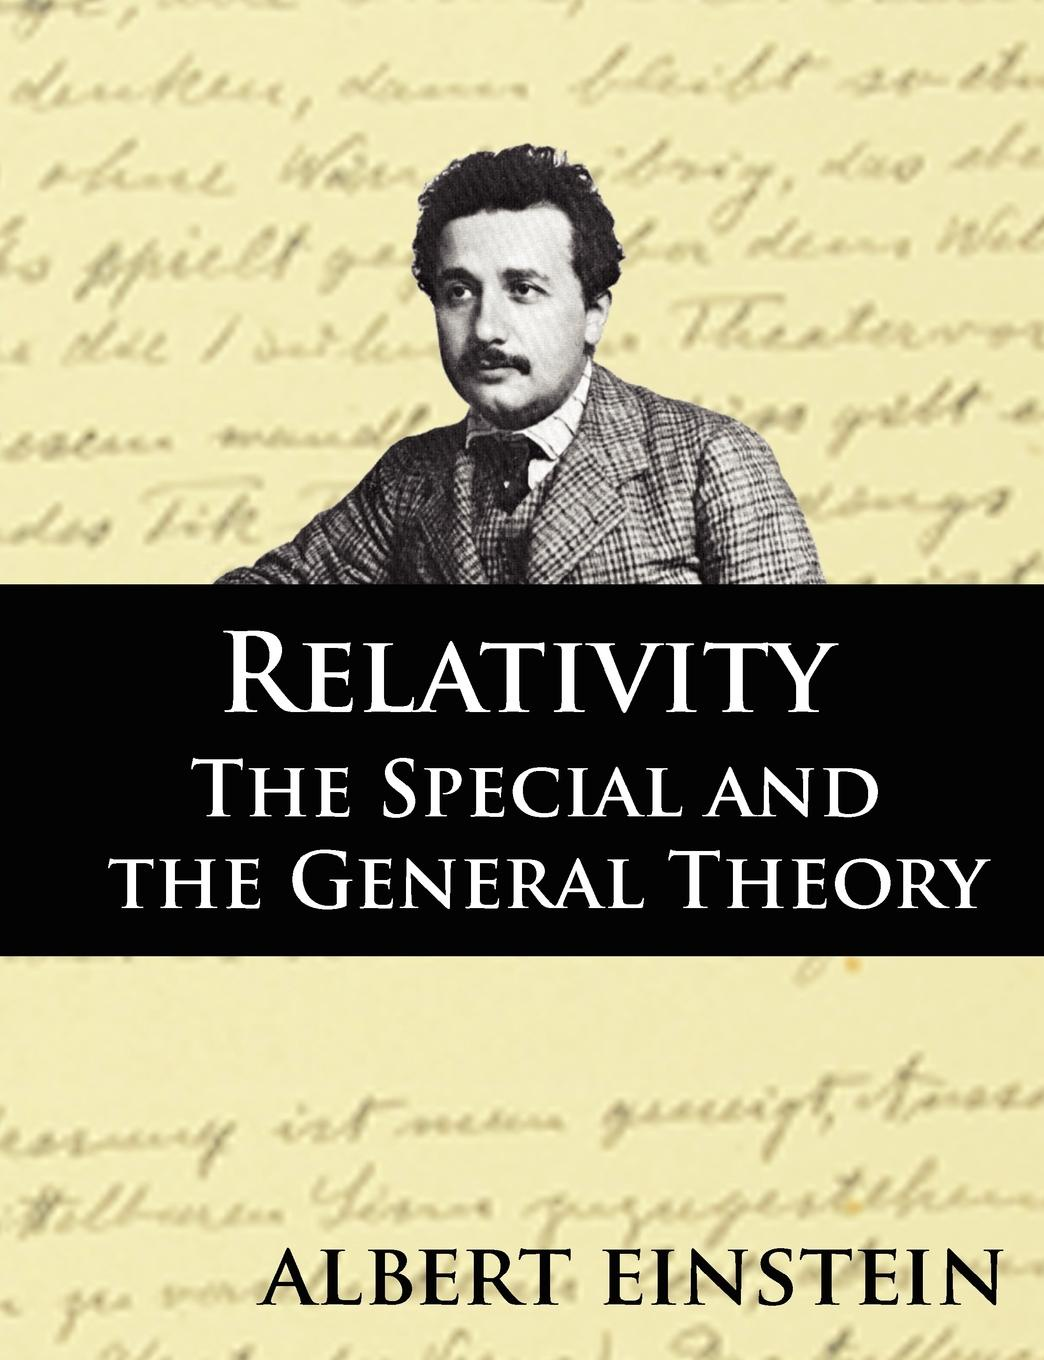 Albert Einstein, Robert Lawson Relativity. The Special and the General Theory, Second Edition albert einstein the principle of relativity